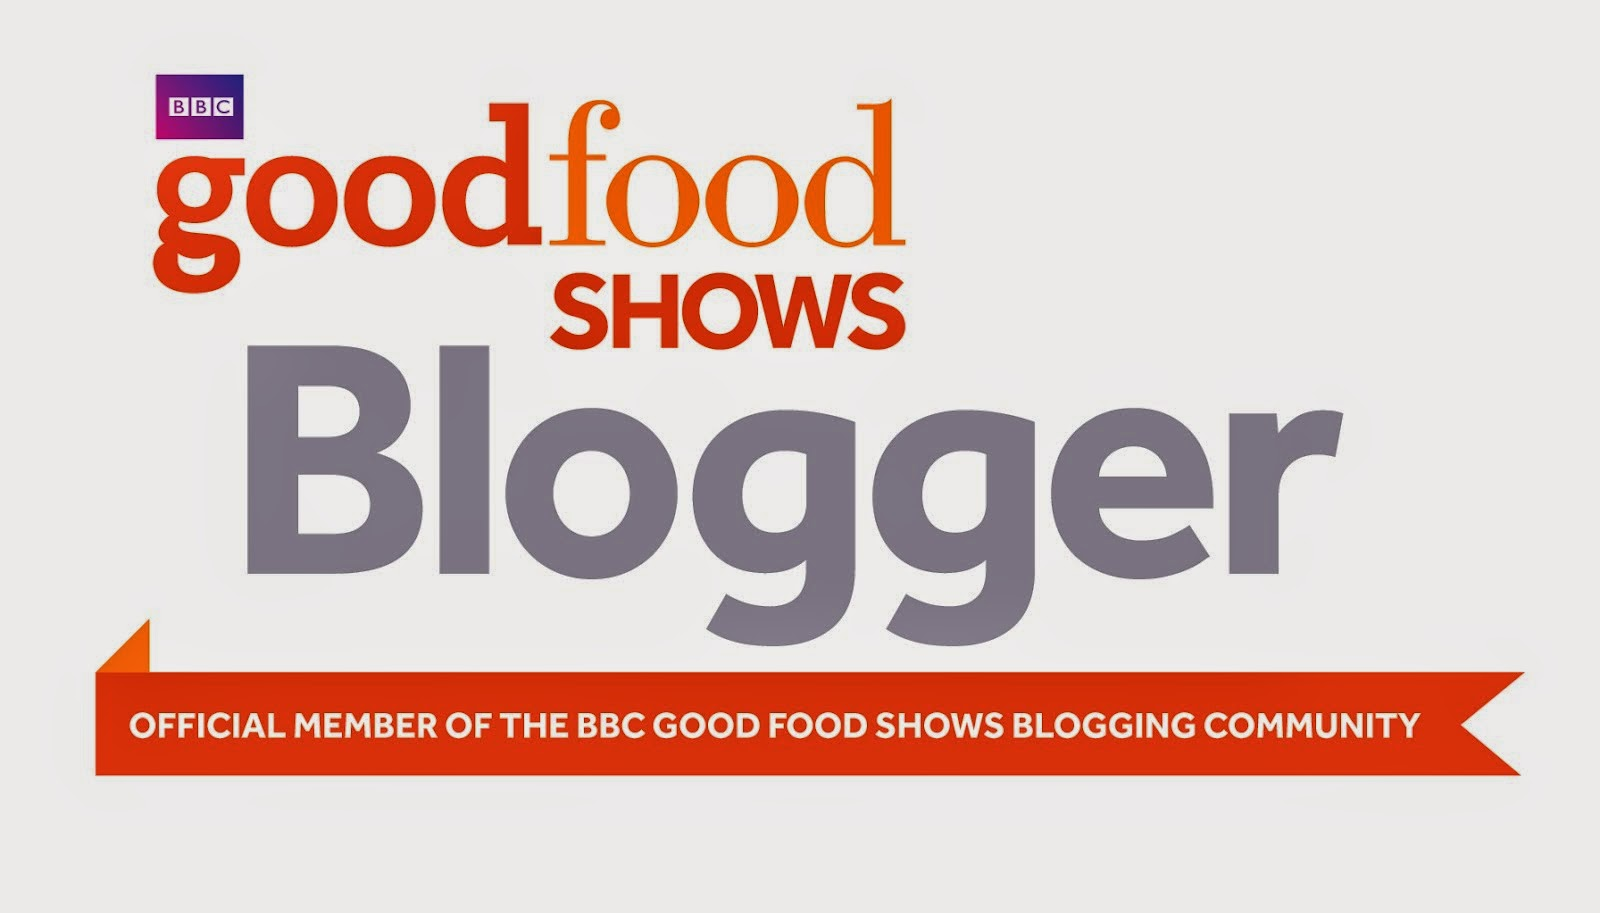 Official Member Of The BBC Good Food Shows Blogging Community